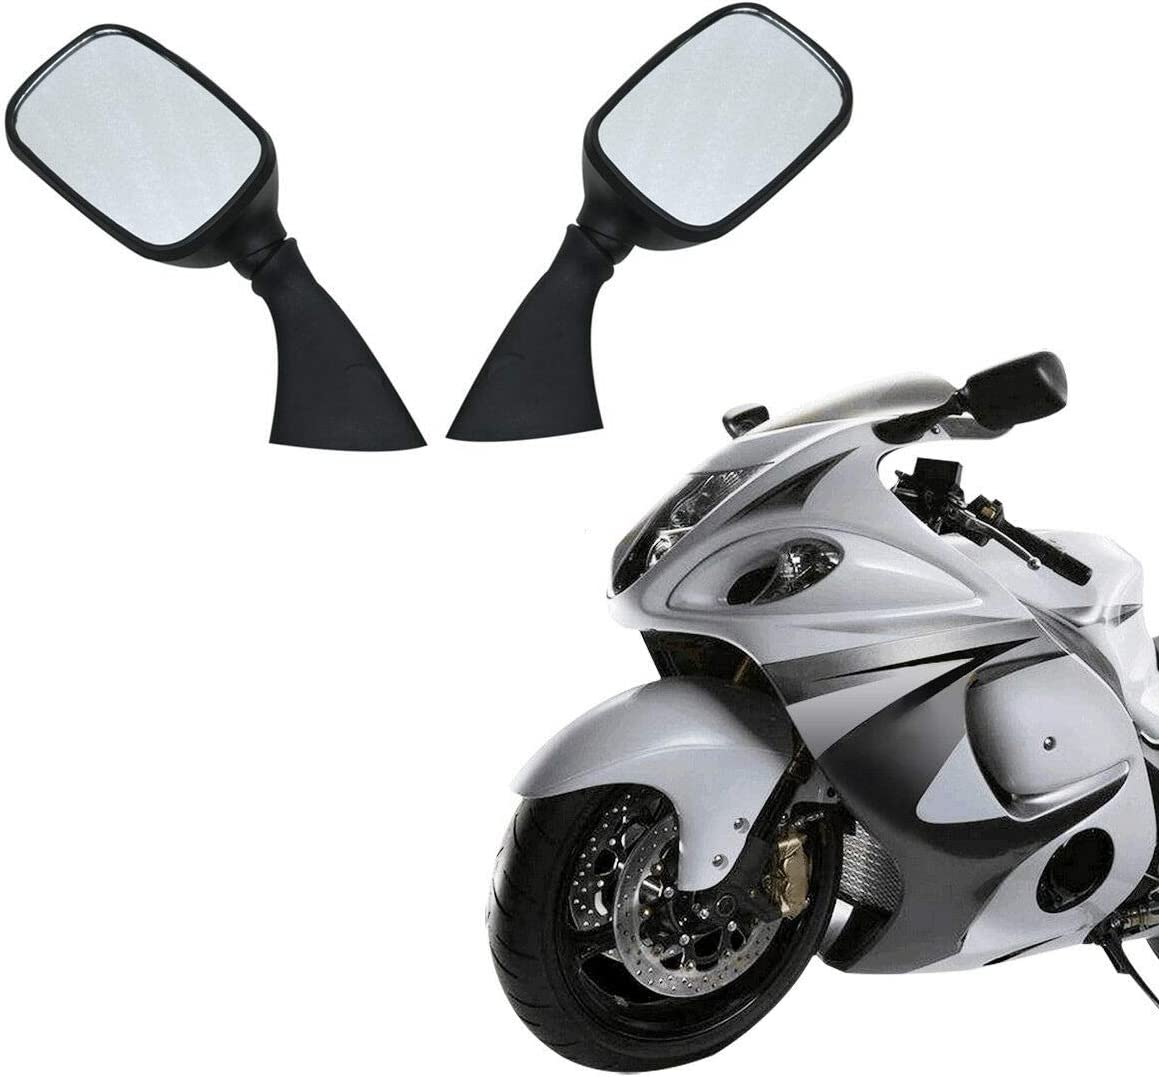 TCT-MT Rear Mirrors View Side Mirror Sale Special Long-awaited Price Fit GSXR For 600 SUZUKI 750